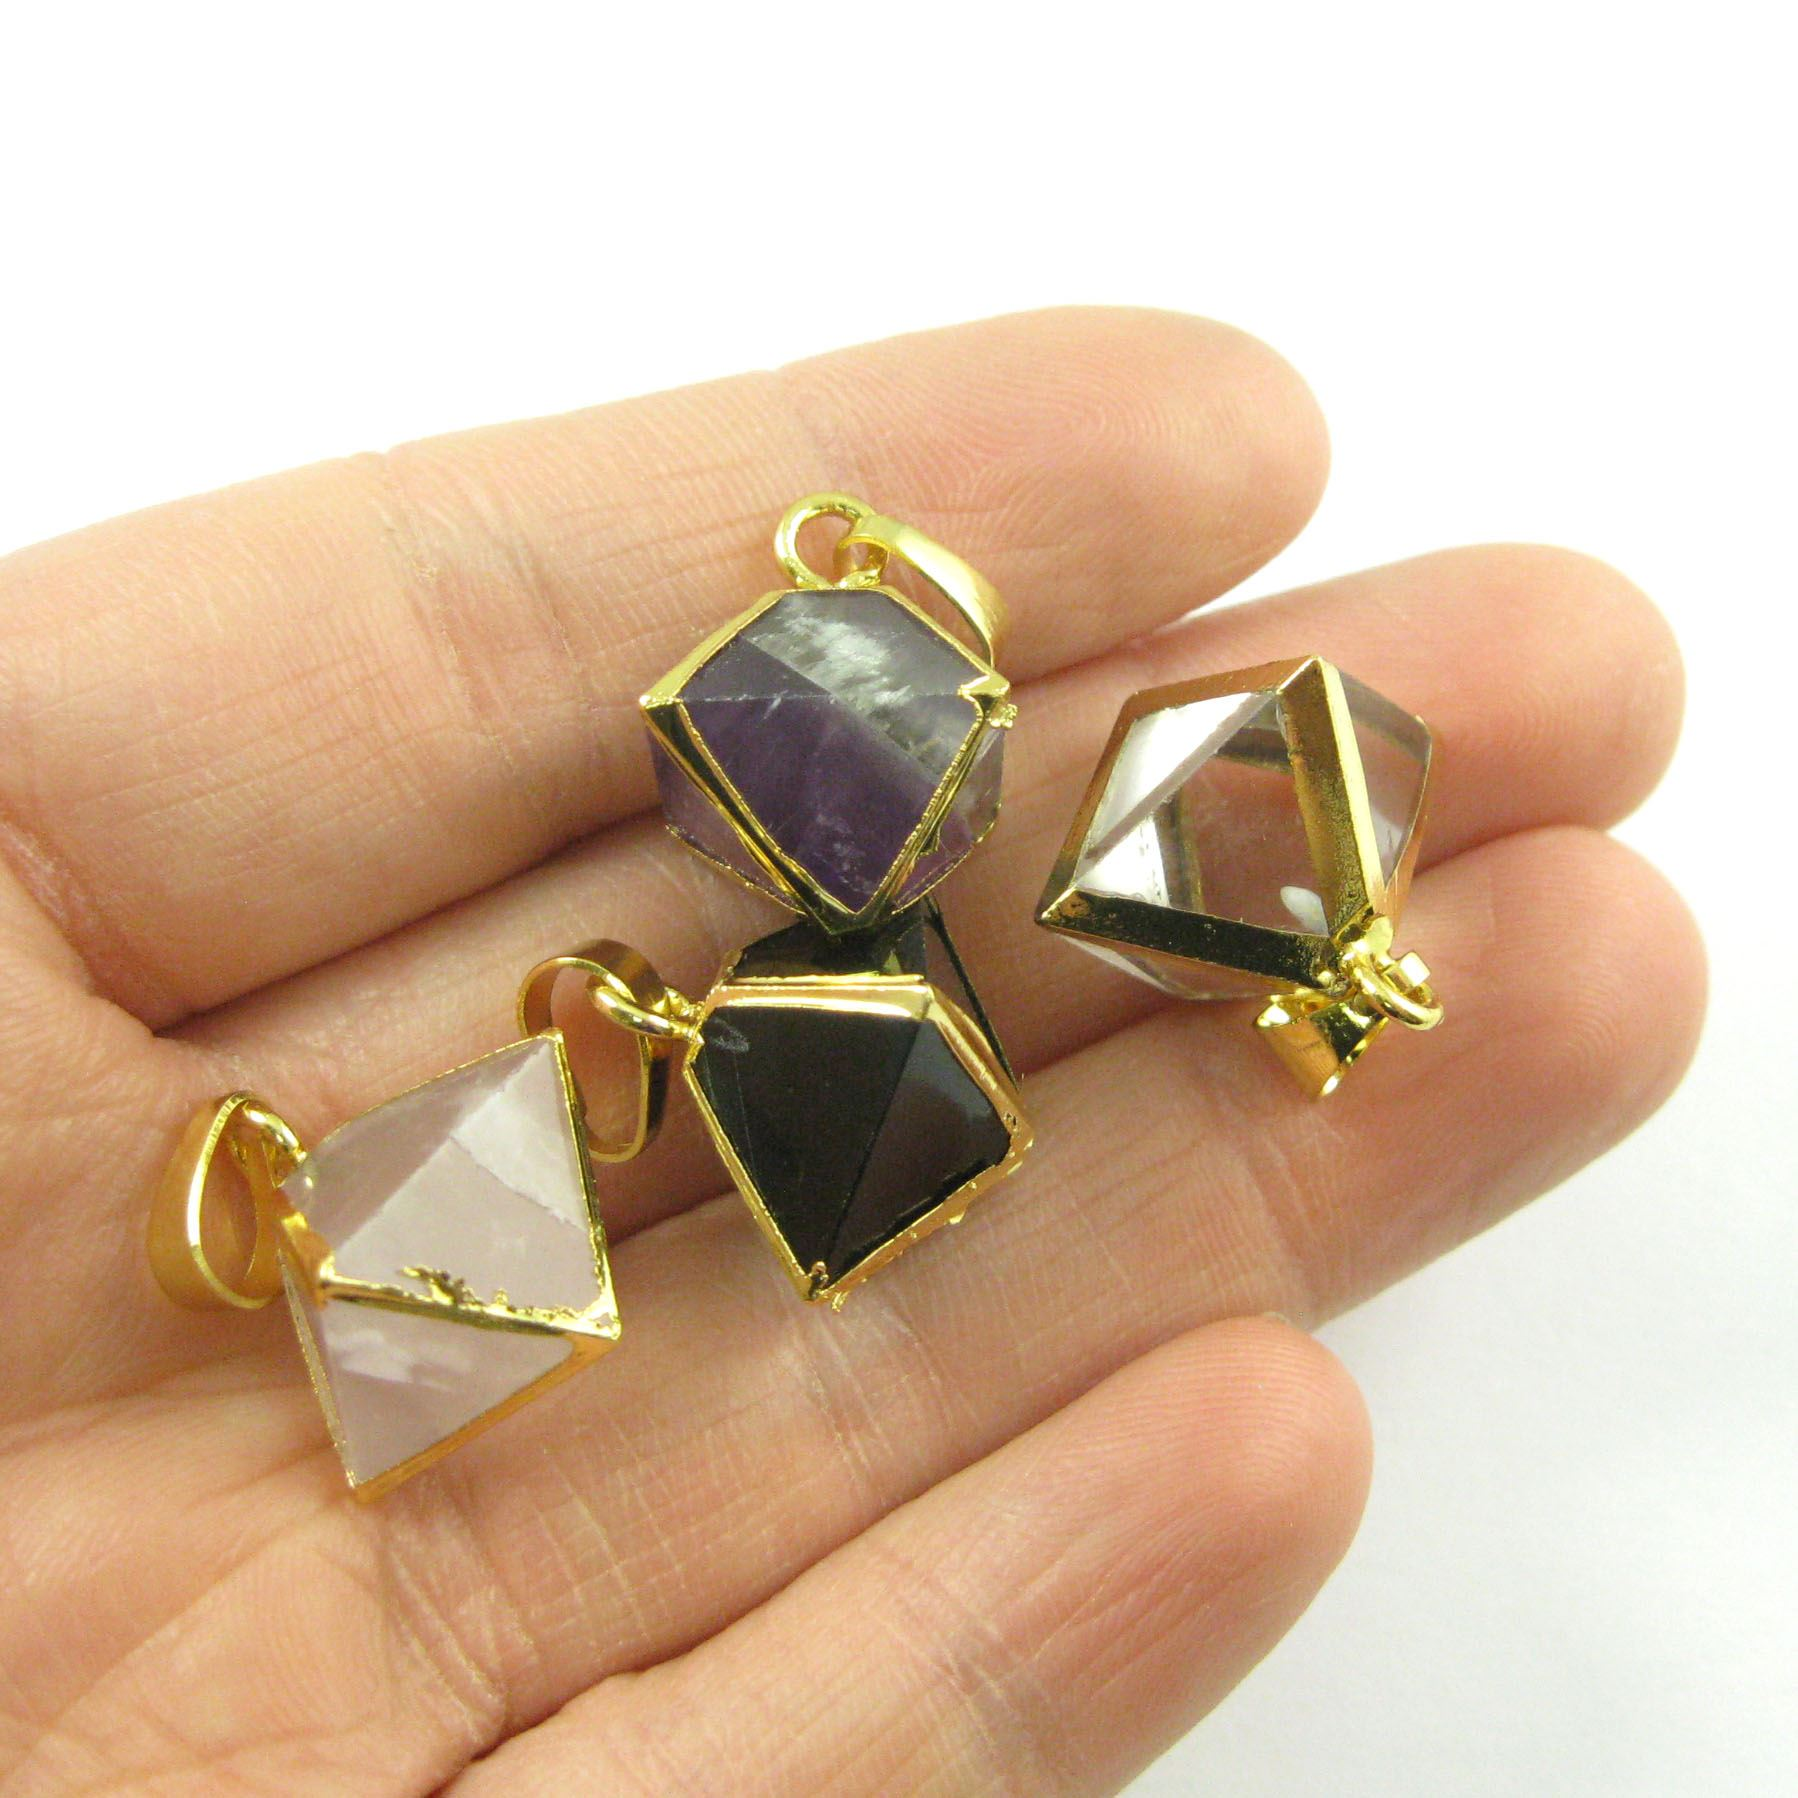 Gemstone Pendant, Octahedron Amethyst Gemstone, 8 sides gemstone Gold plated Pendant,Small Gemstone Rock Pendant- 25m